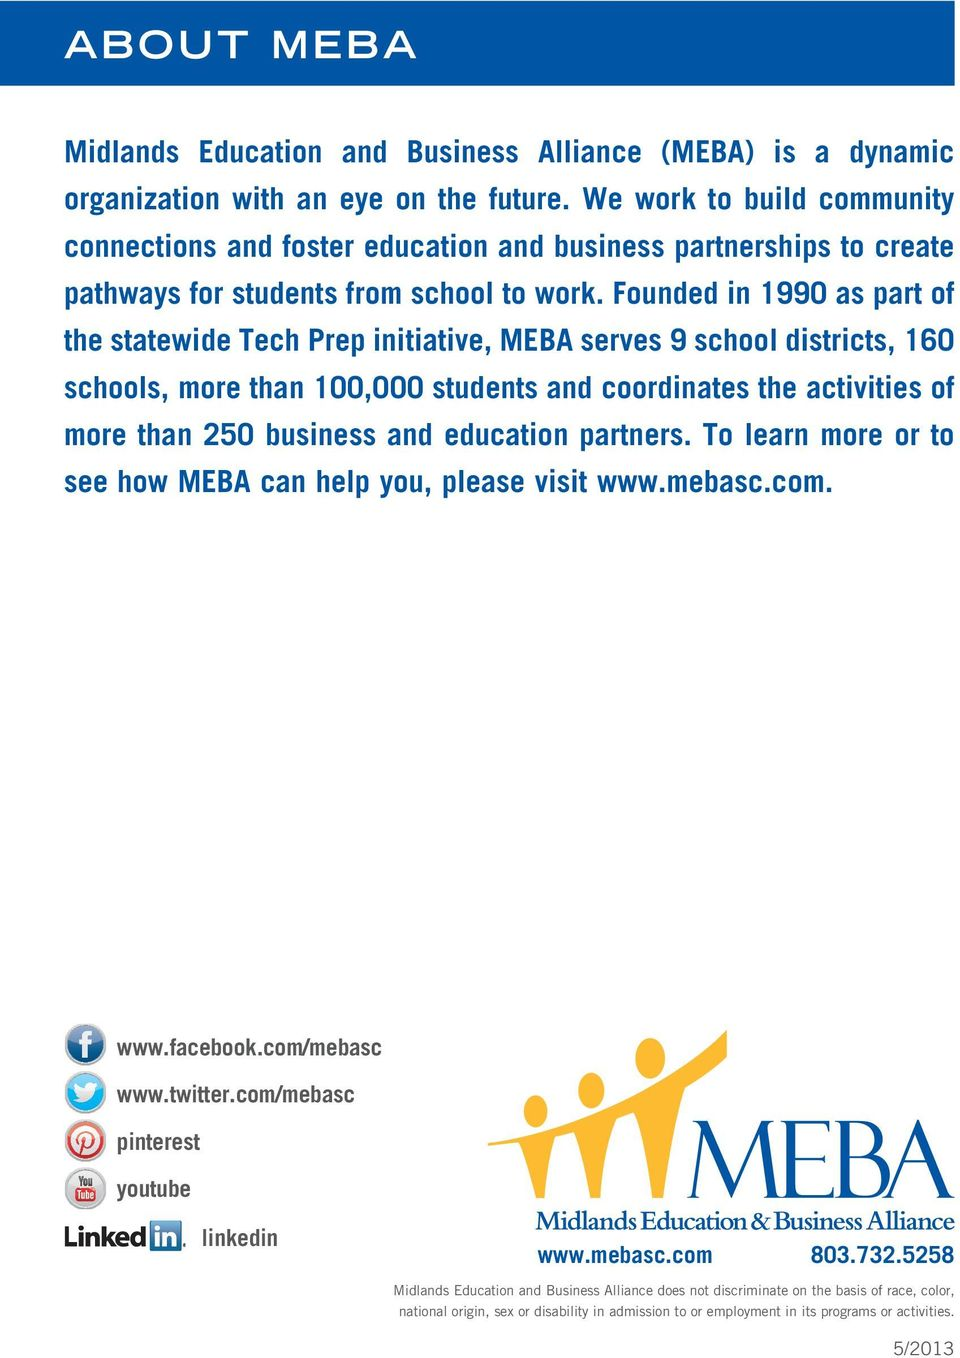 Founded in 1990 as part of the statewide Tech Prep initiative, MEBA serves 9 school districts, 160 schools, more than 100,000 students and coordinates the activities of more than 250 business and